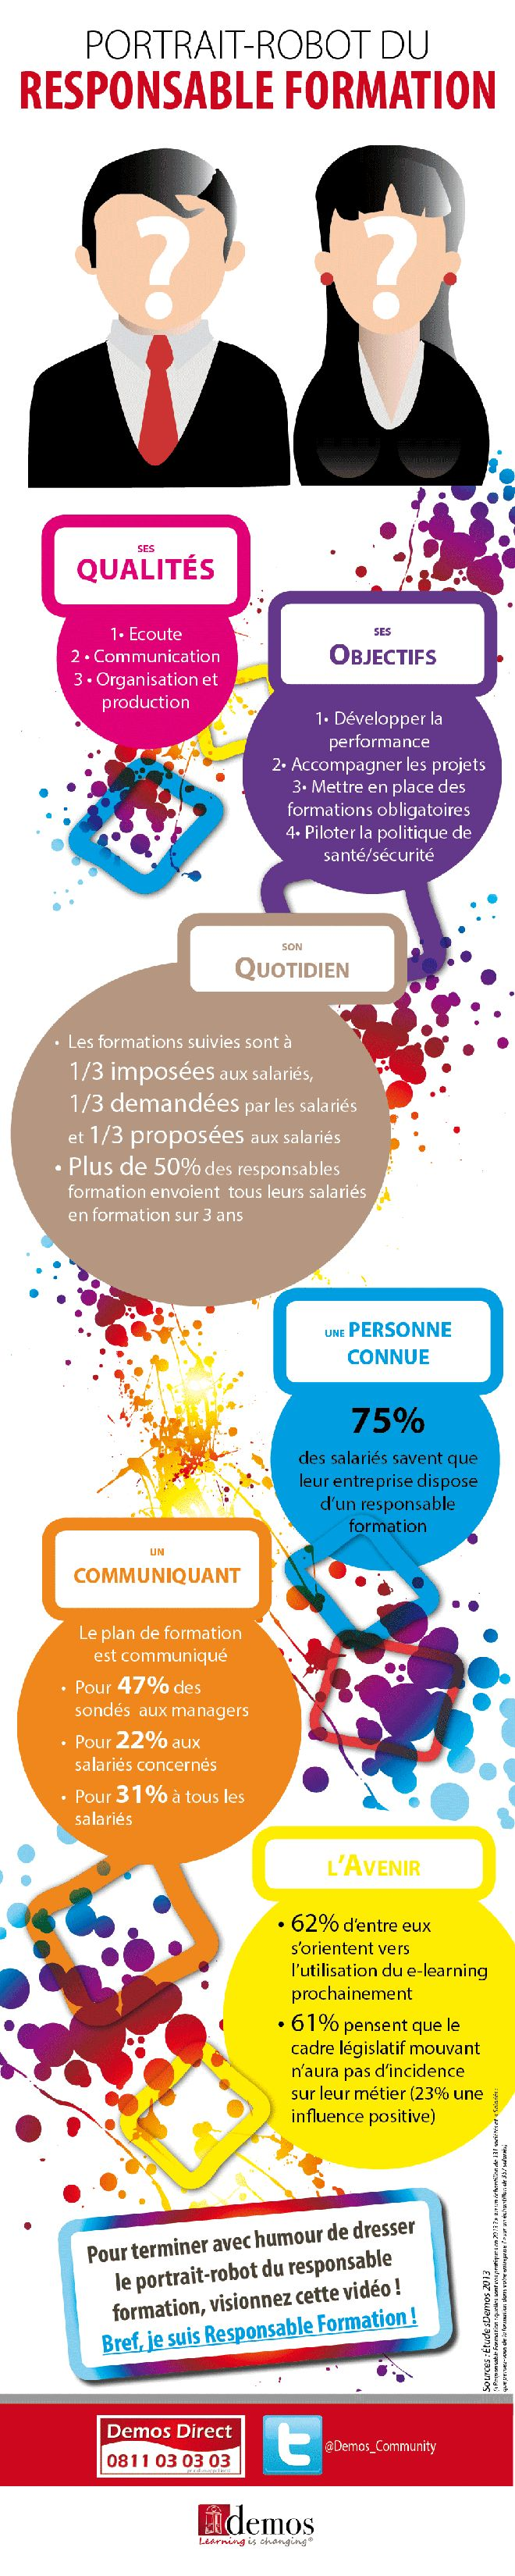 Responsable_formation.png (660×3299)